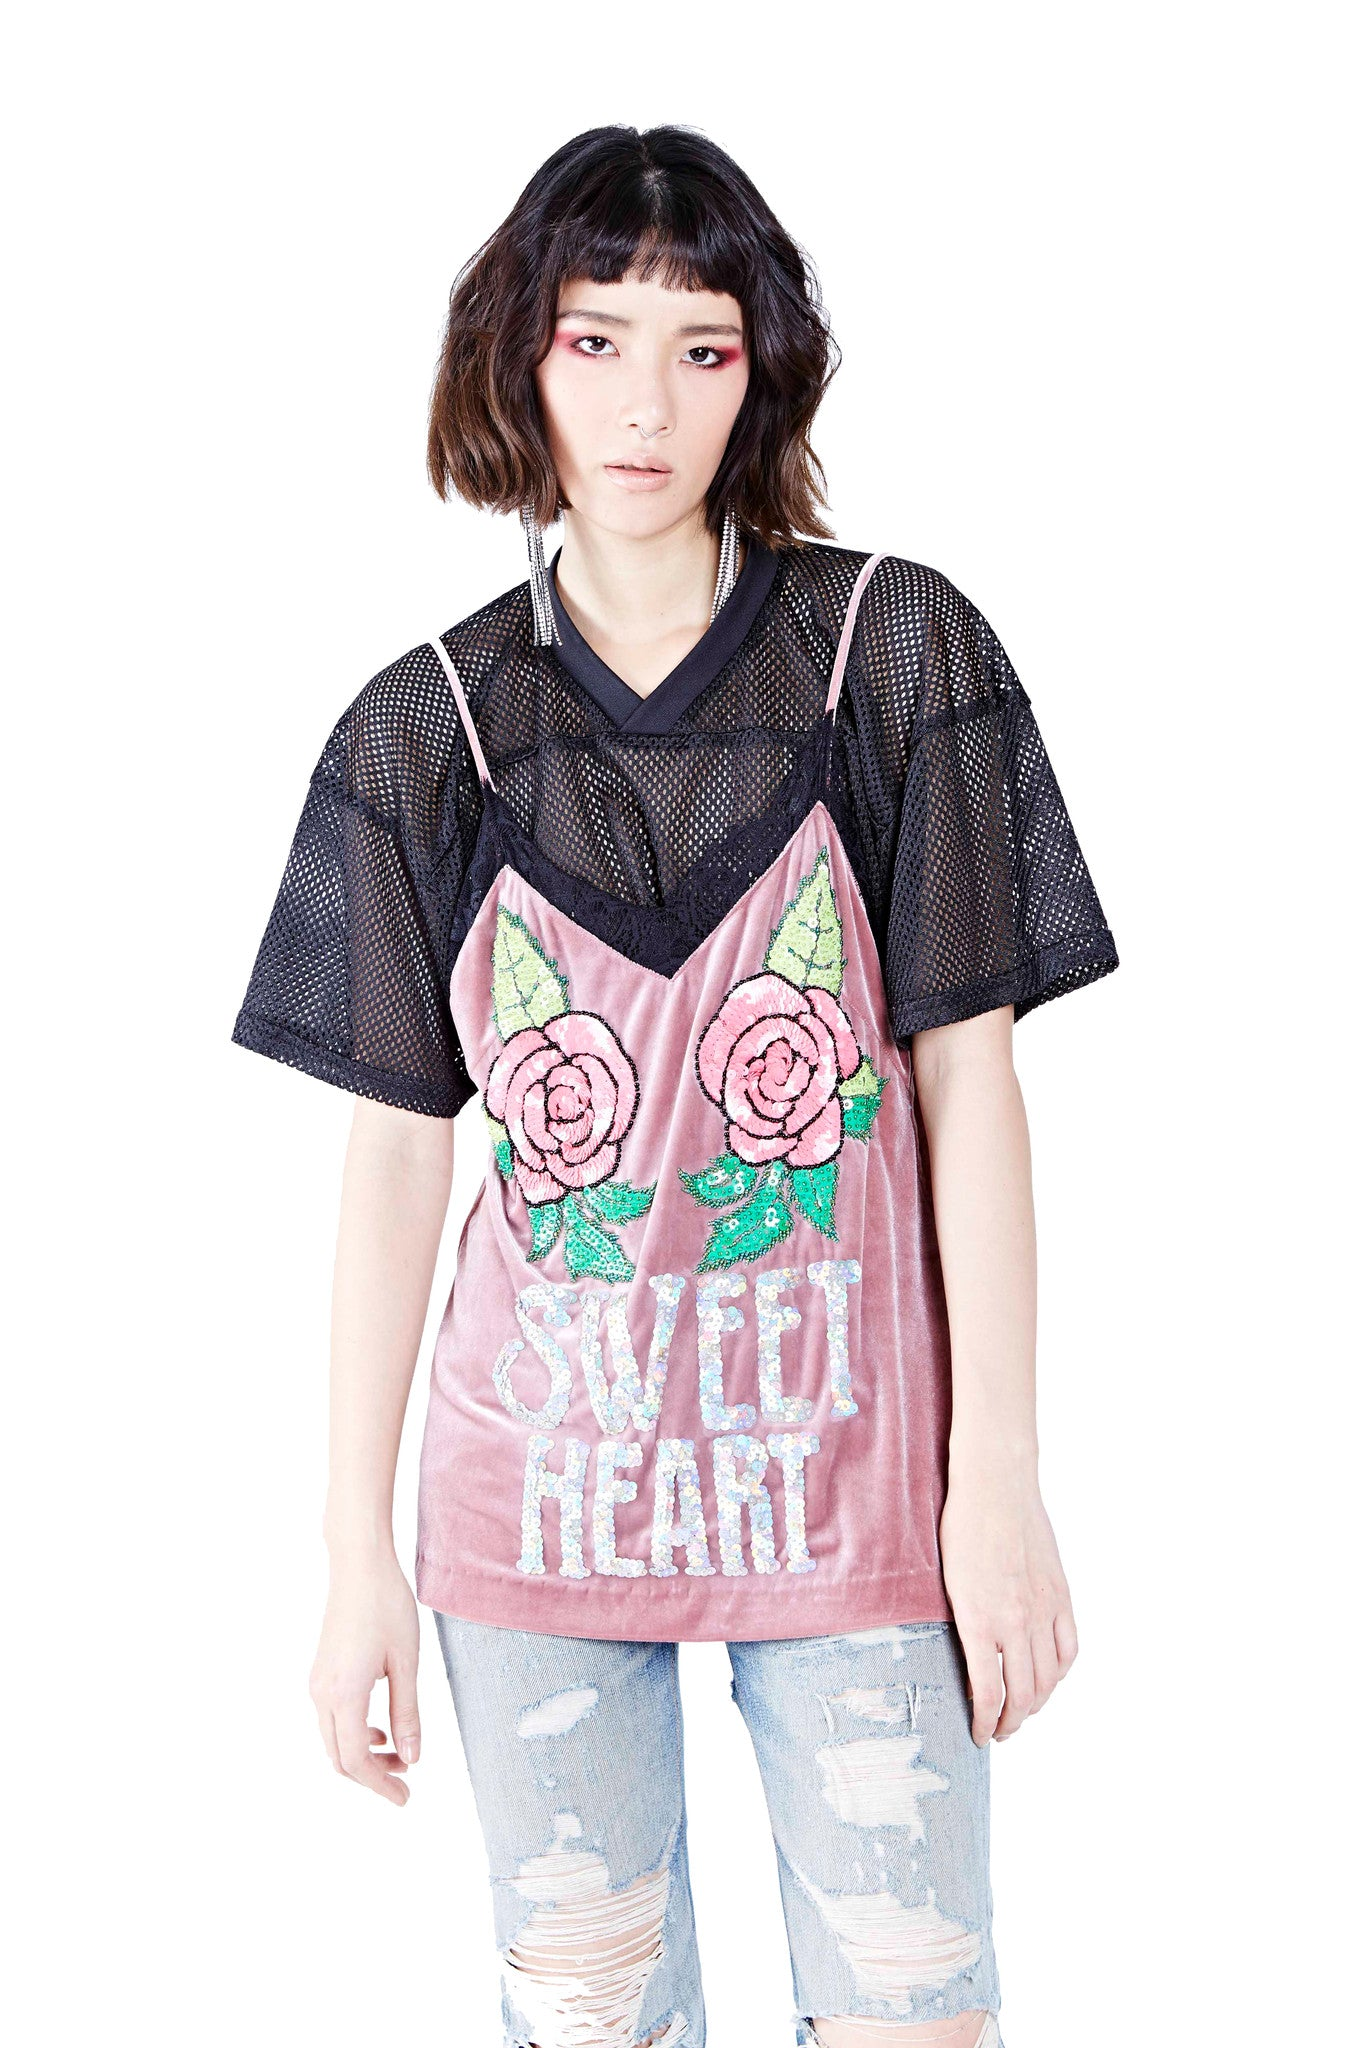 Sweet Heart Top - Pink - I LOVE DIY by Panida